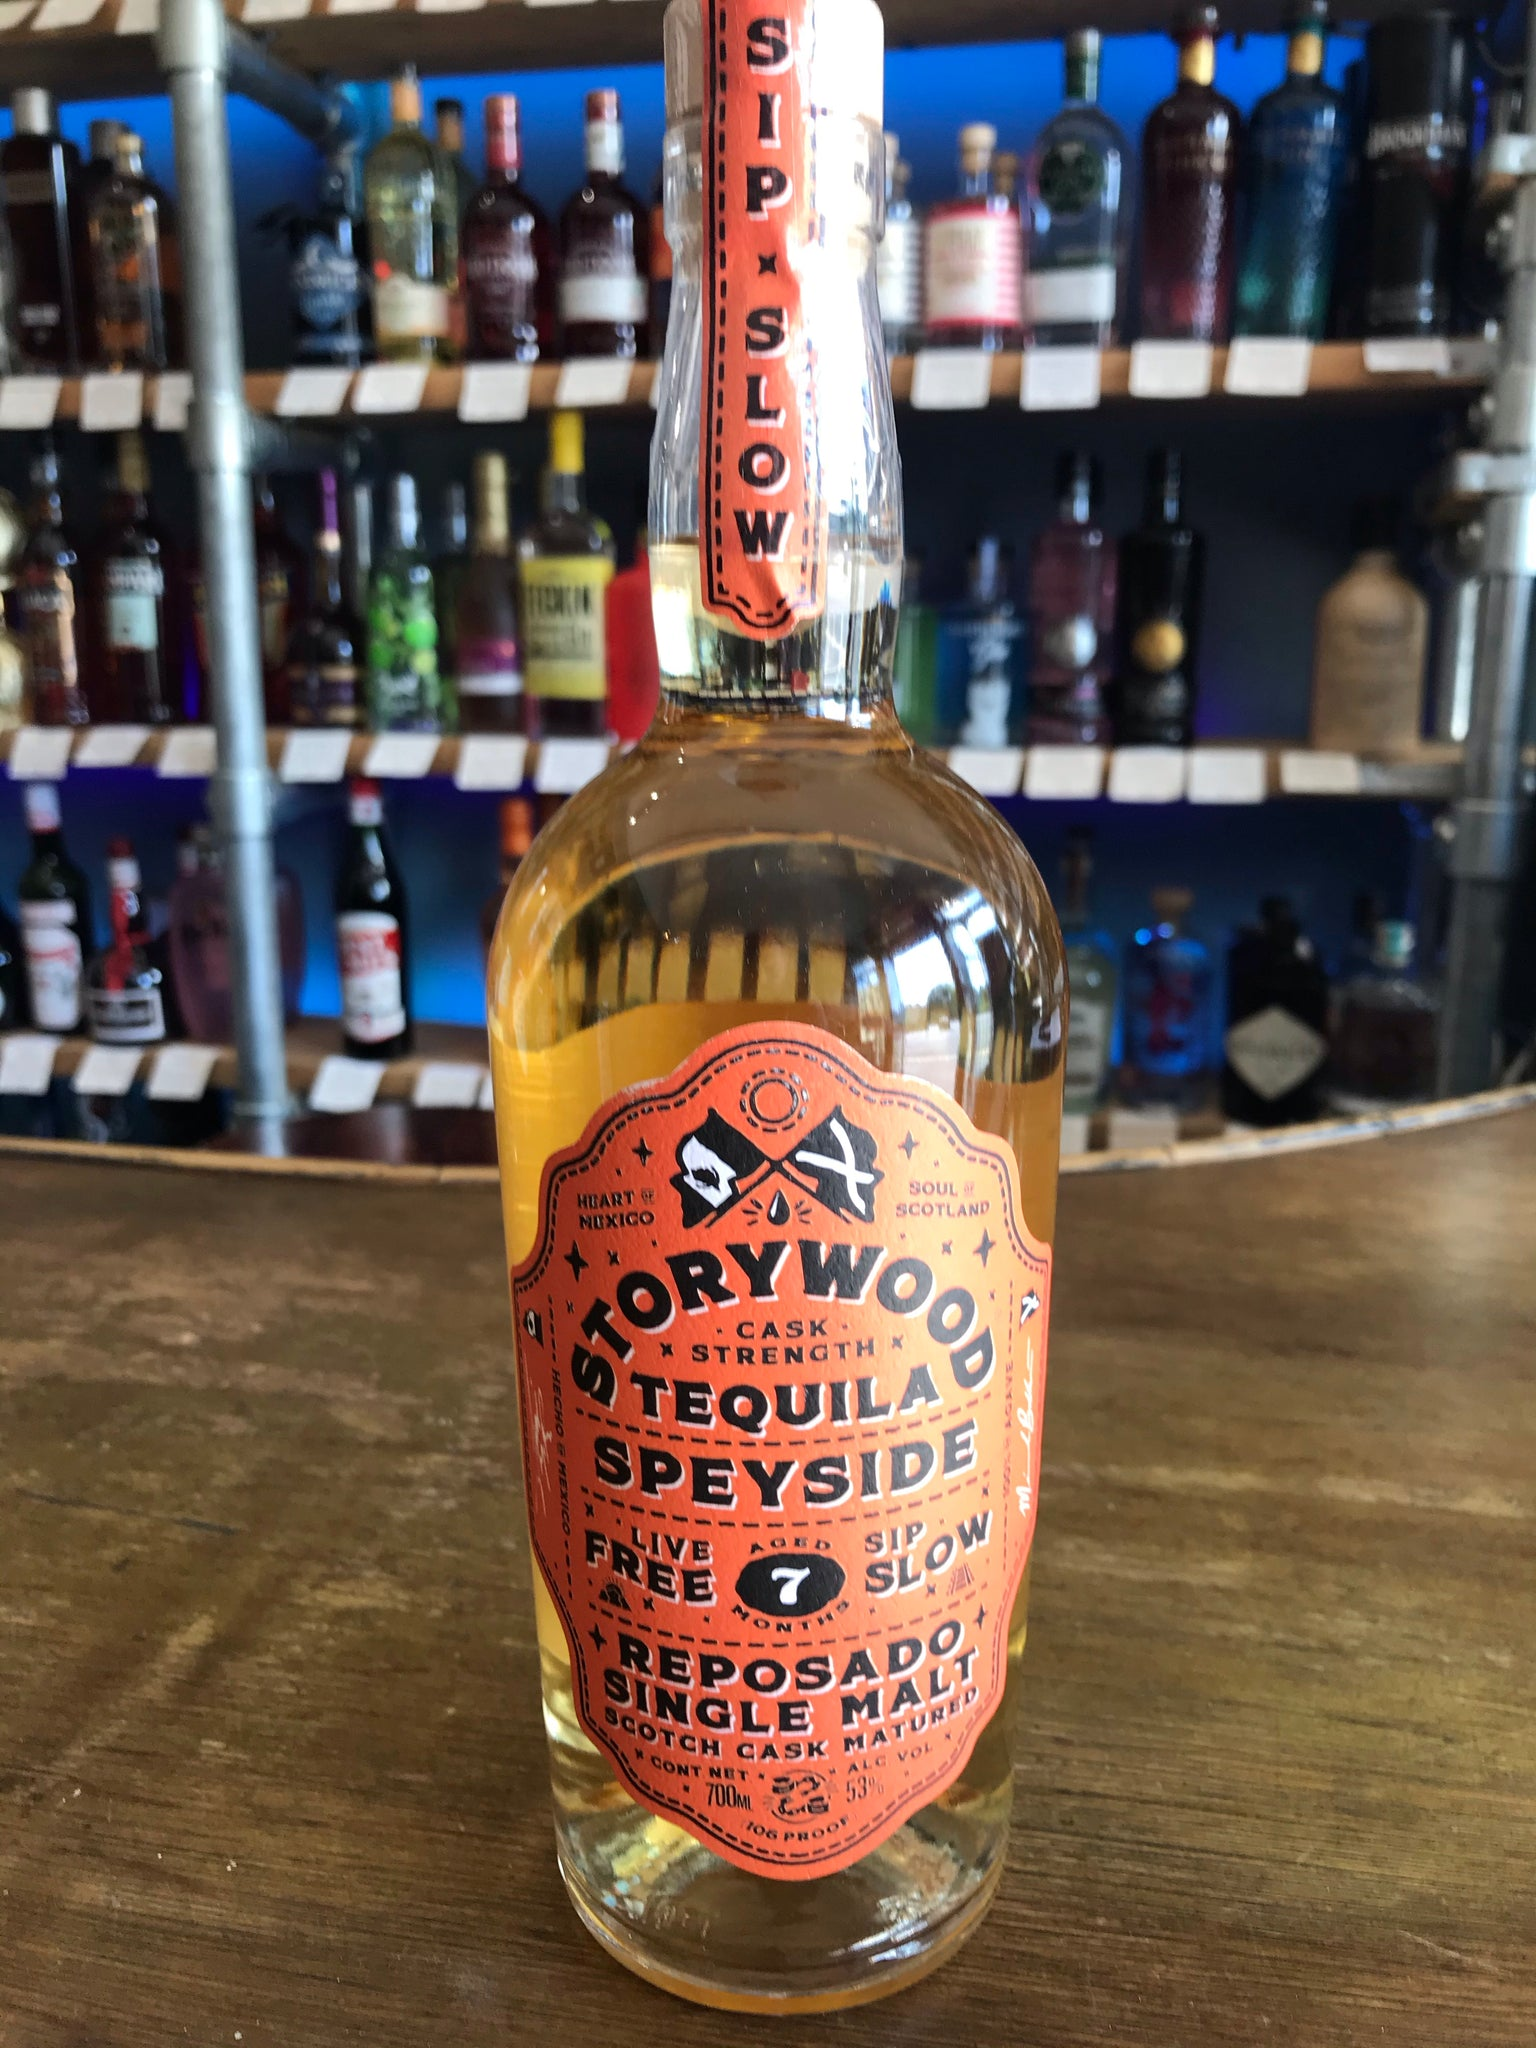 Storywood Tequila - Cask Strength Speyside Cask 7 Month Aged Reposado